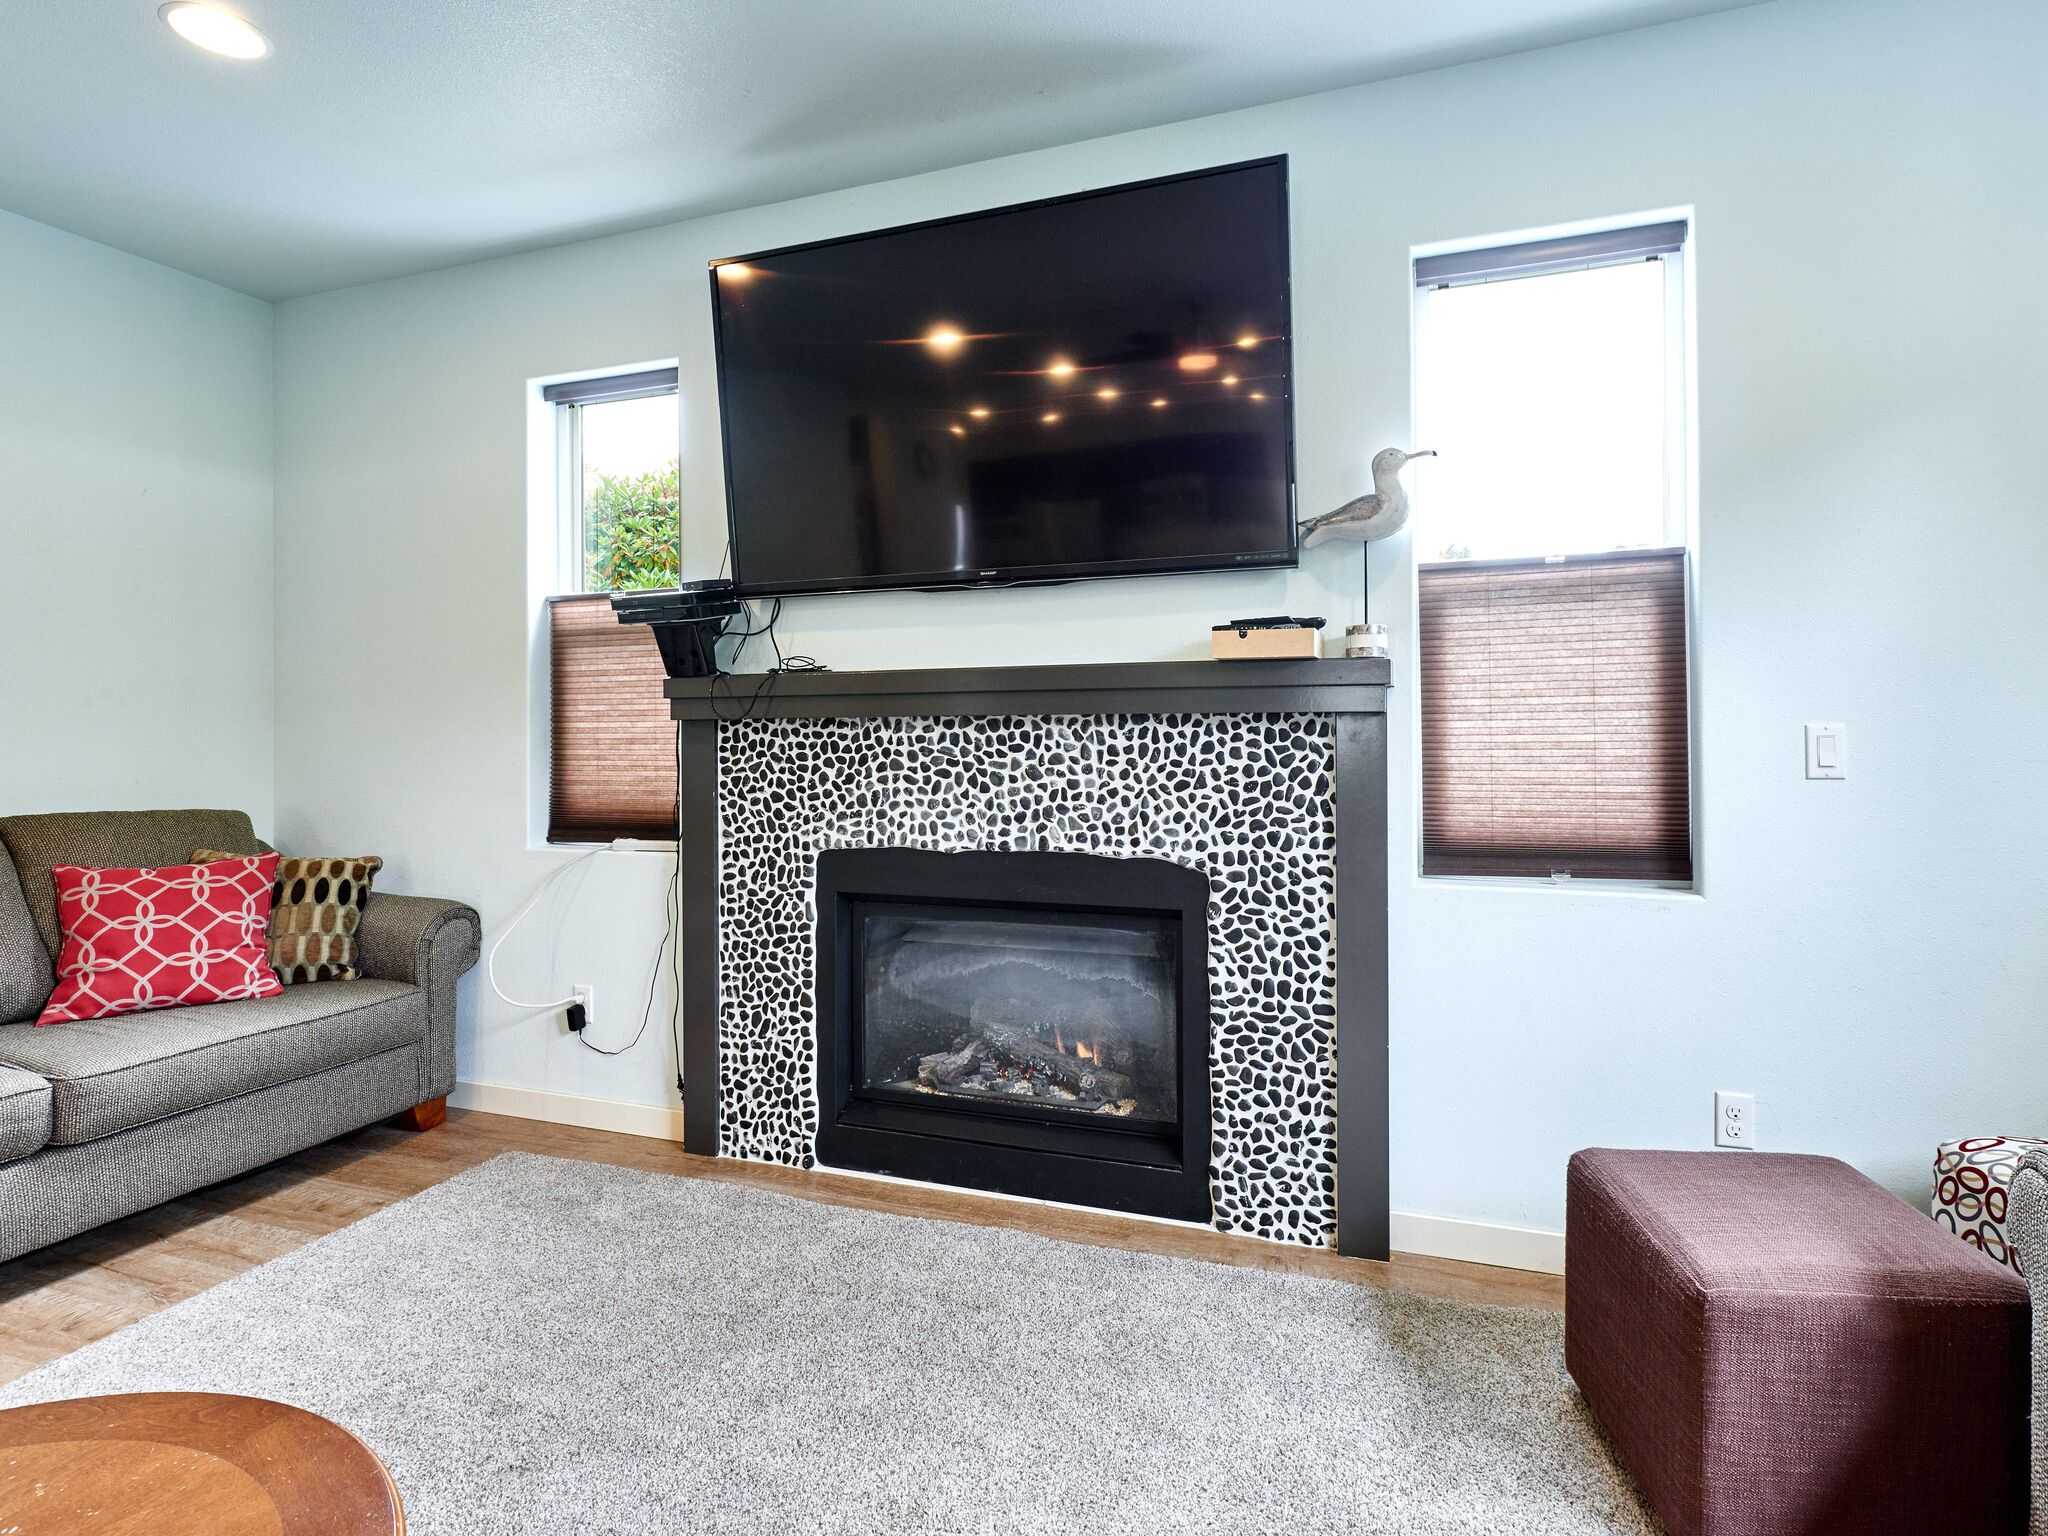 Vacation home living room fireplace.